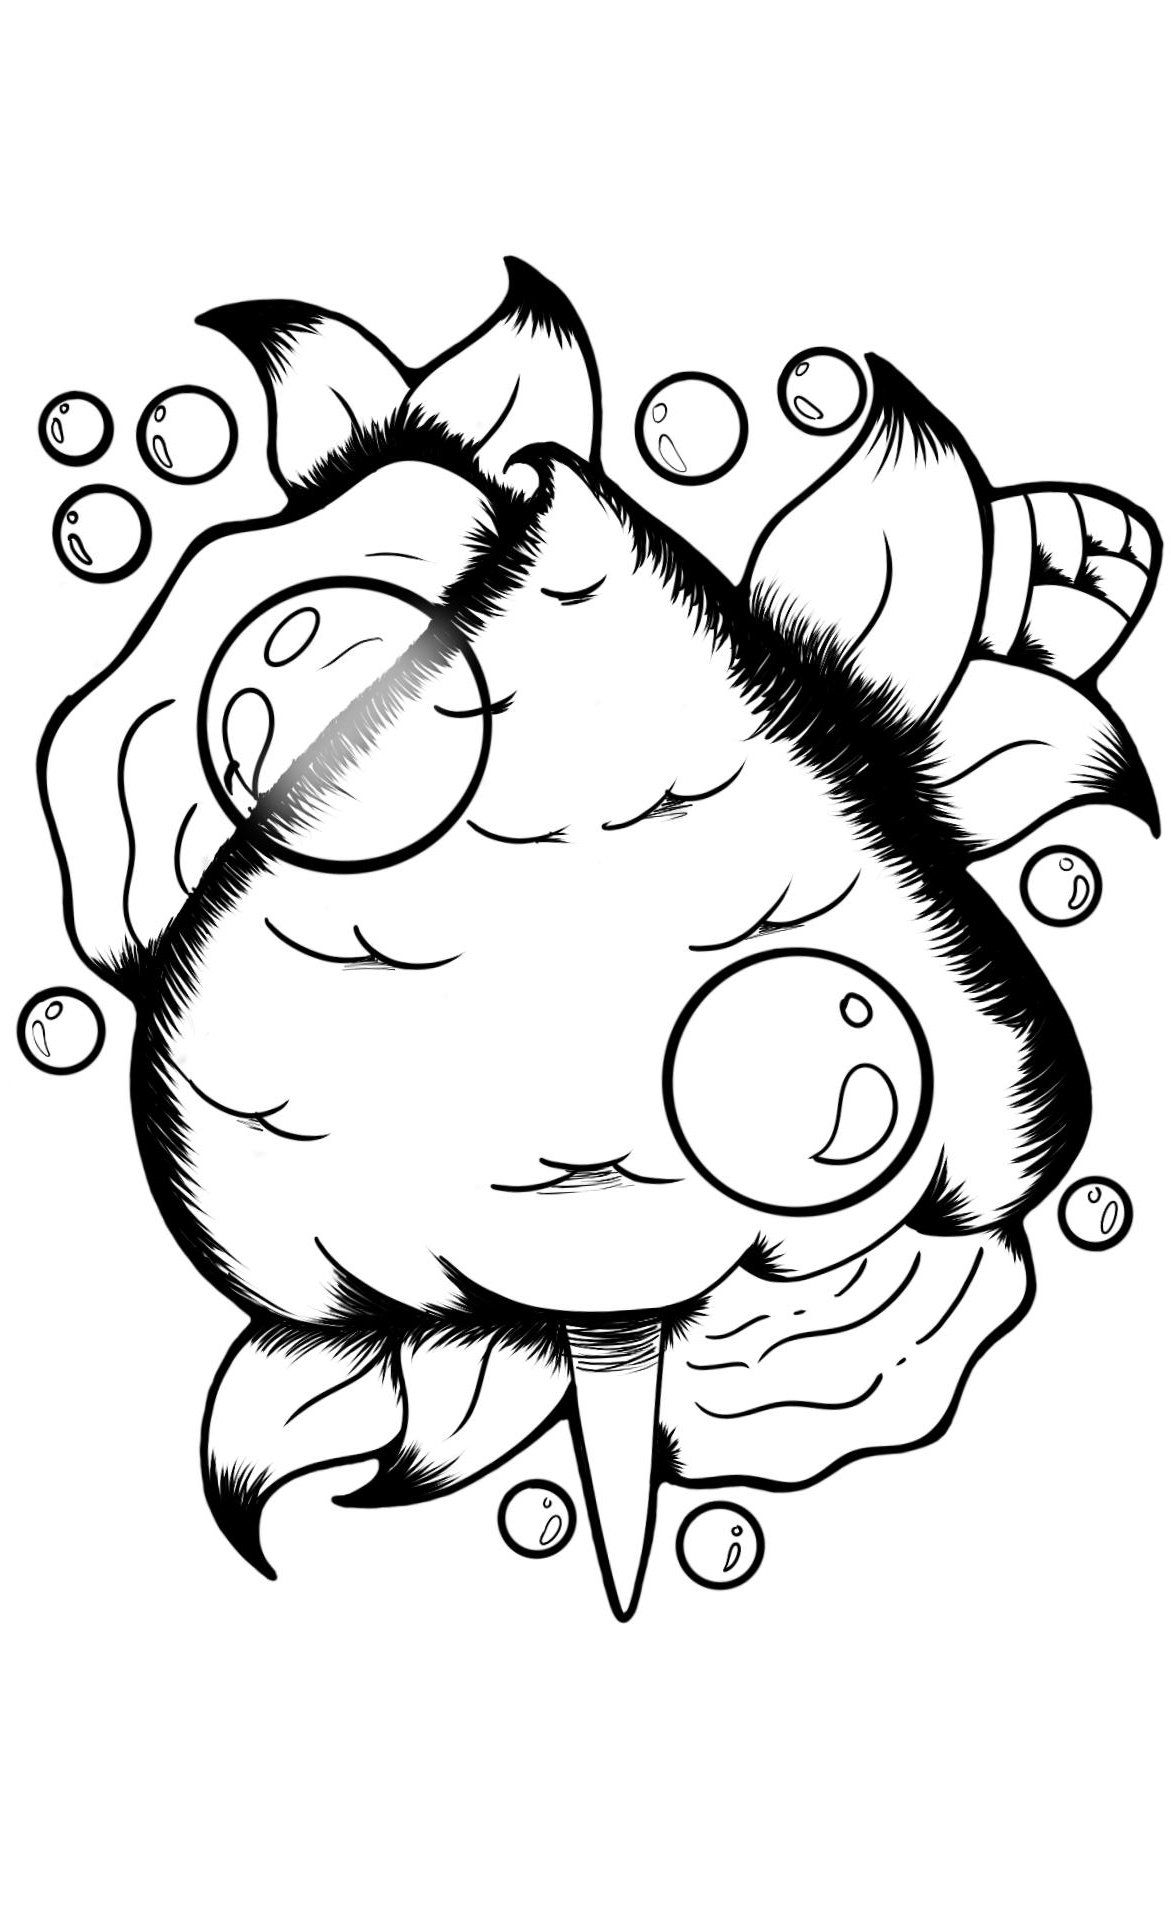 Cotton Candy Coloring Page By Vgdraw On Etsy Coloring Pages Etsy